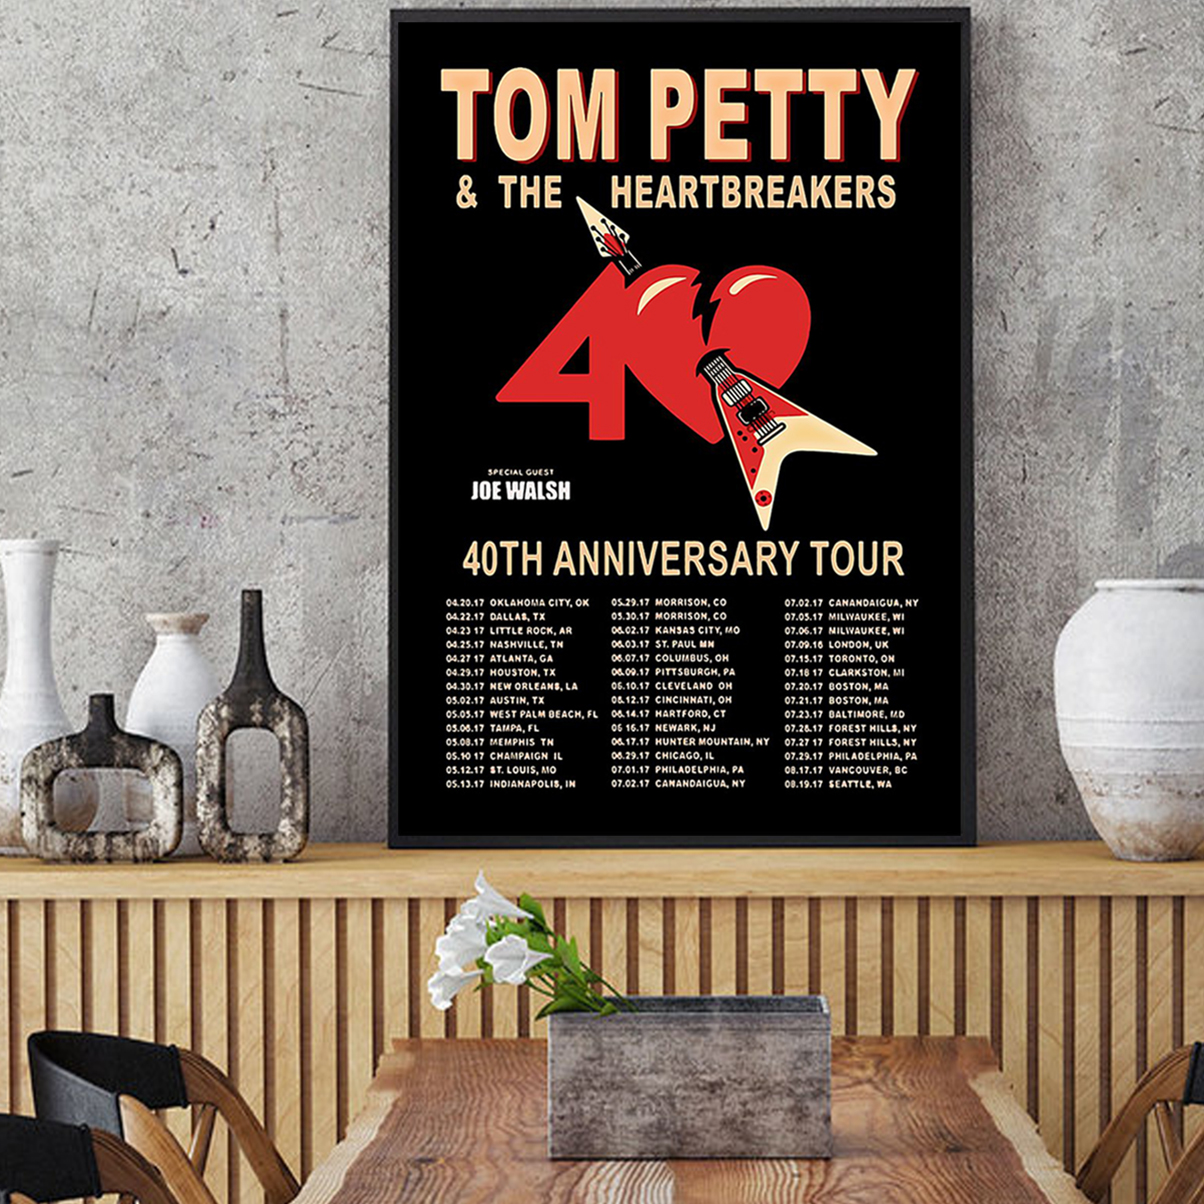 Tom petty and the heartbreakers 40th anniversary tour poster A1